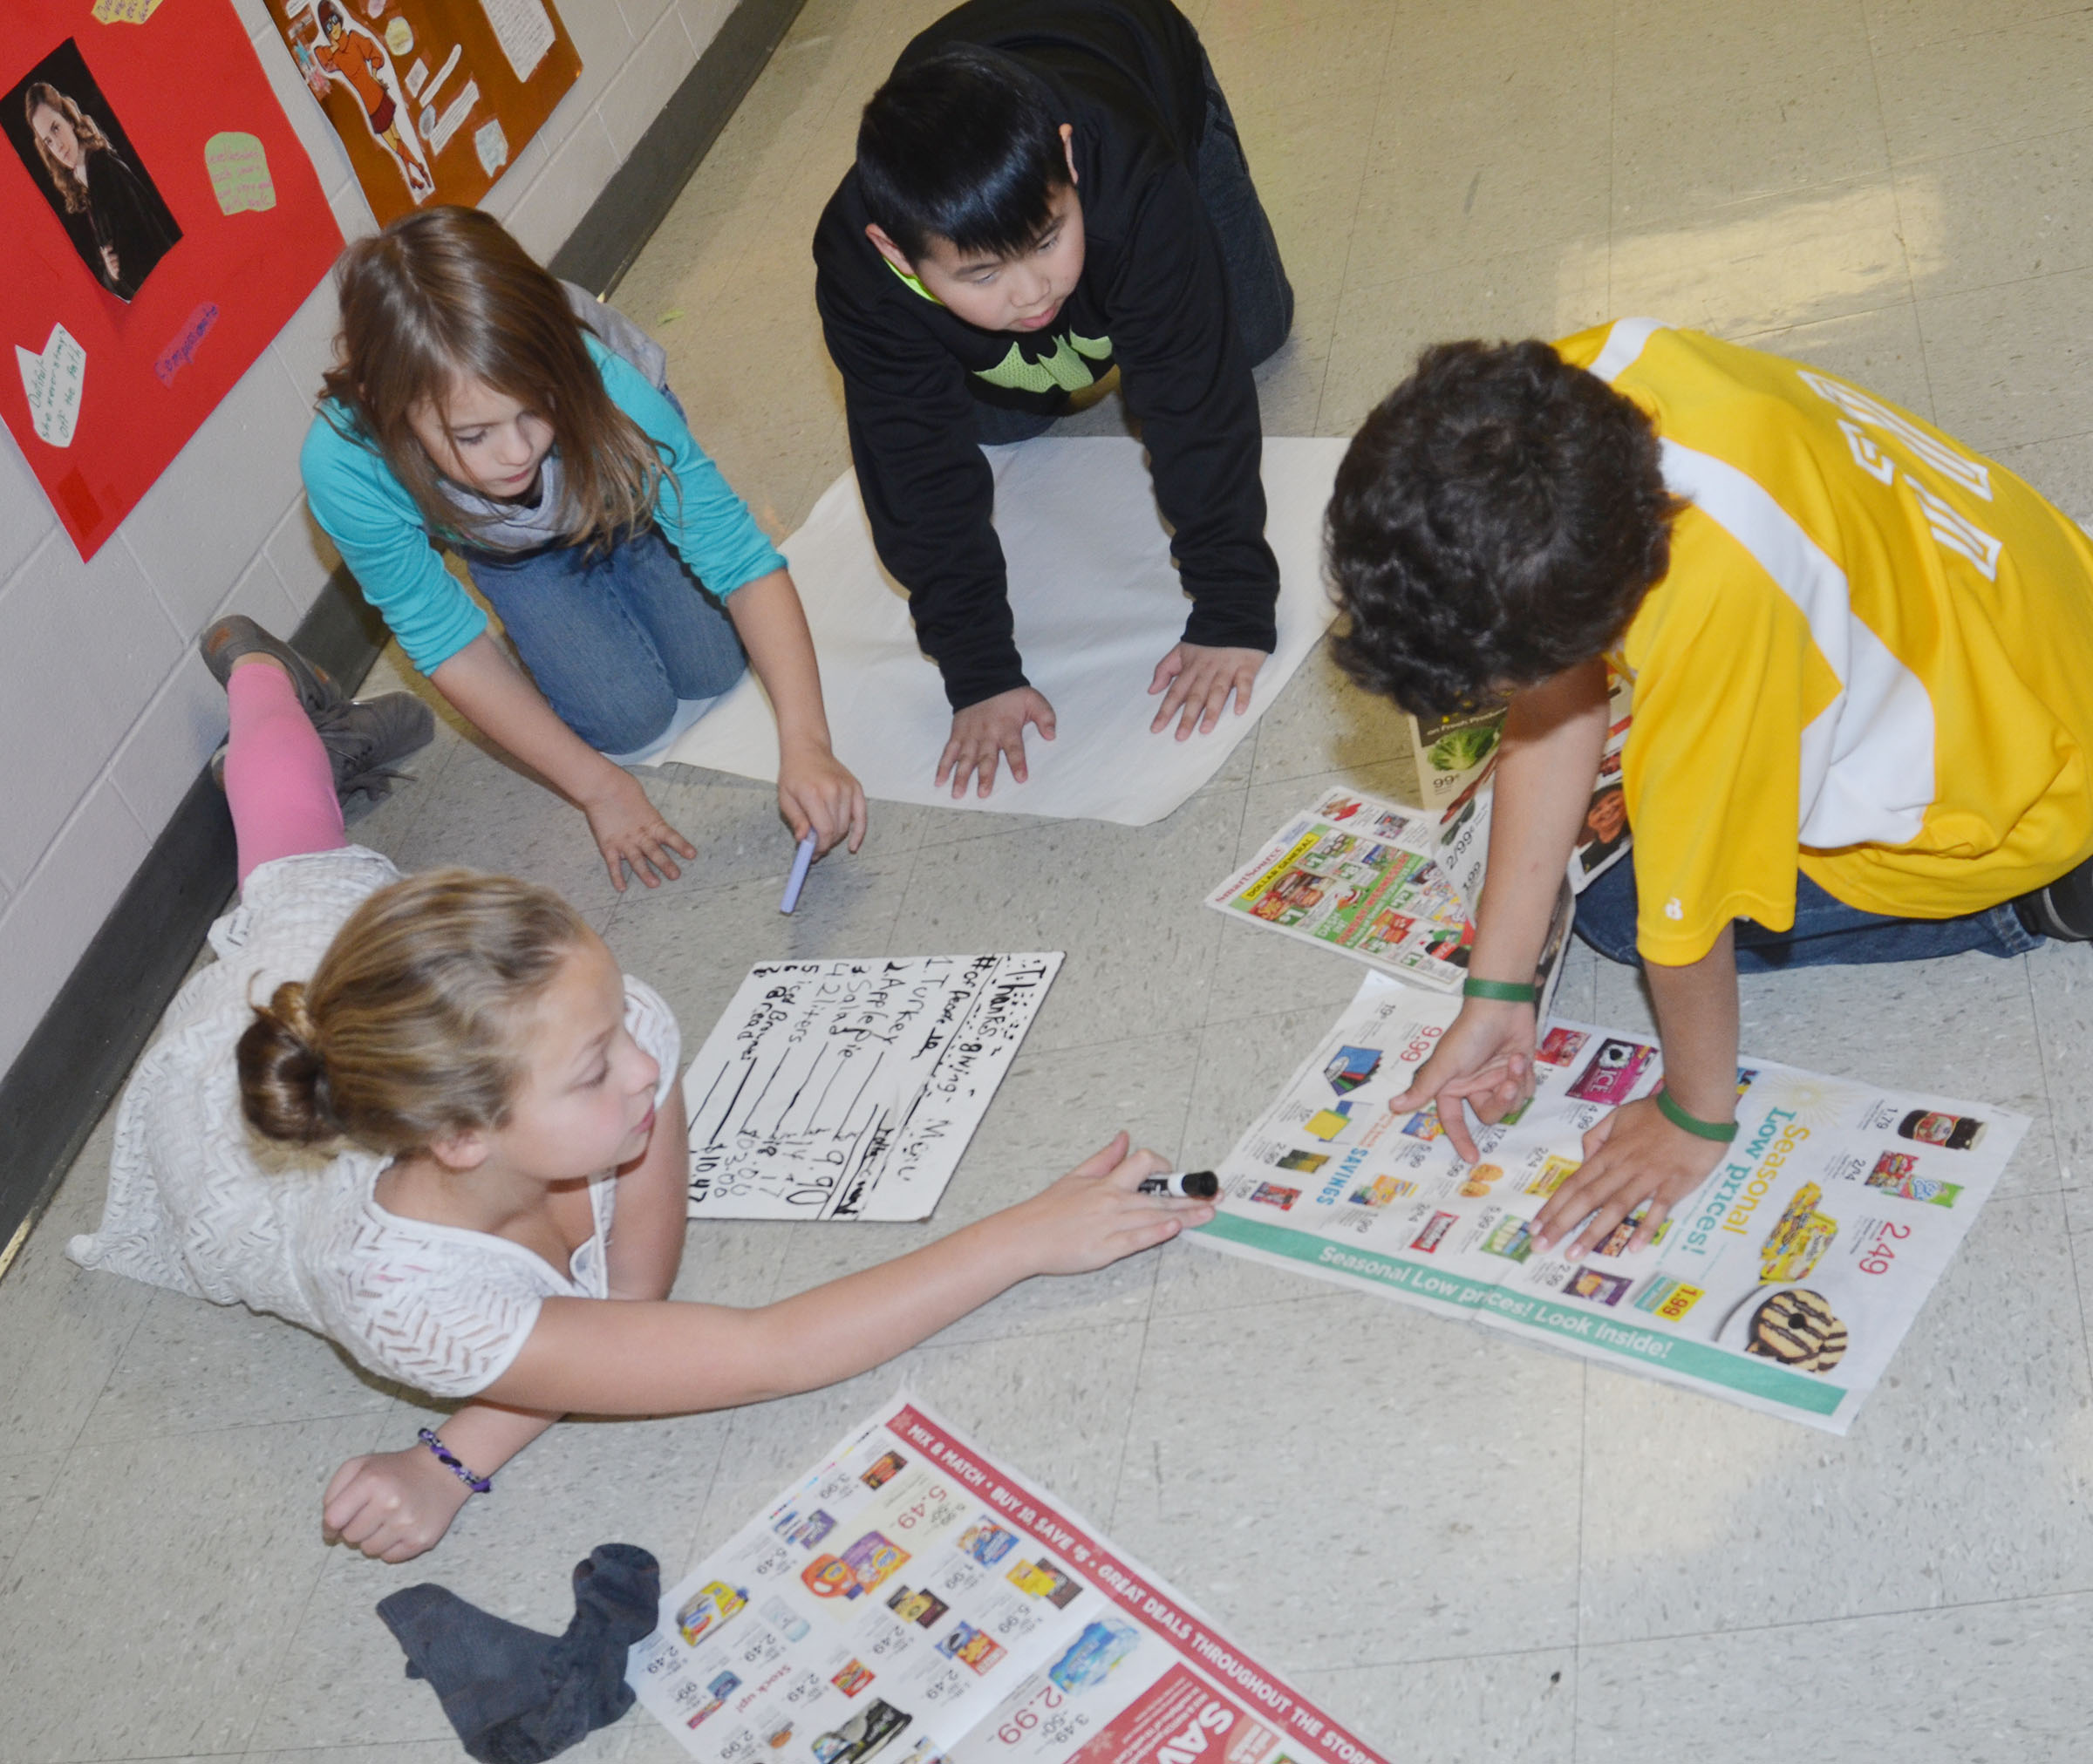 CMS fourth-graders, from left, Deanna Reardon, Ellie Wise, Zhi Chen and Darrion Mills discuss what they will have for their Thanksgiving dinner.